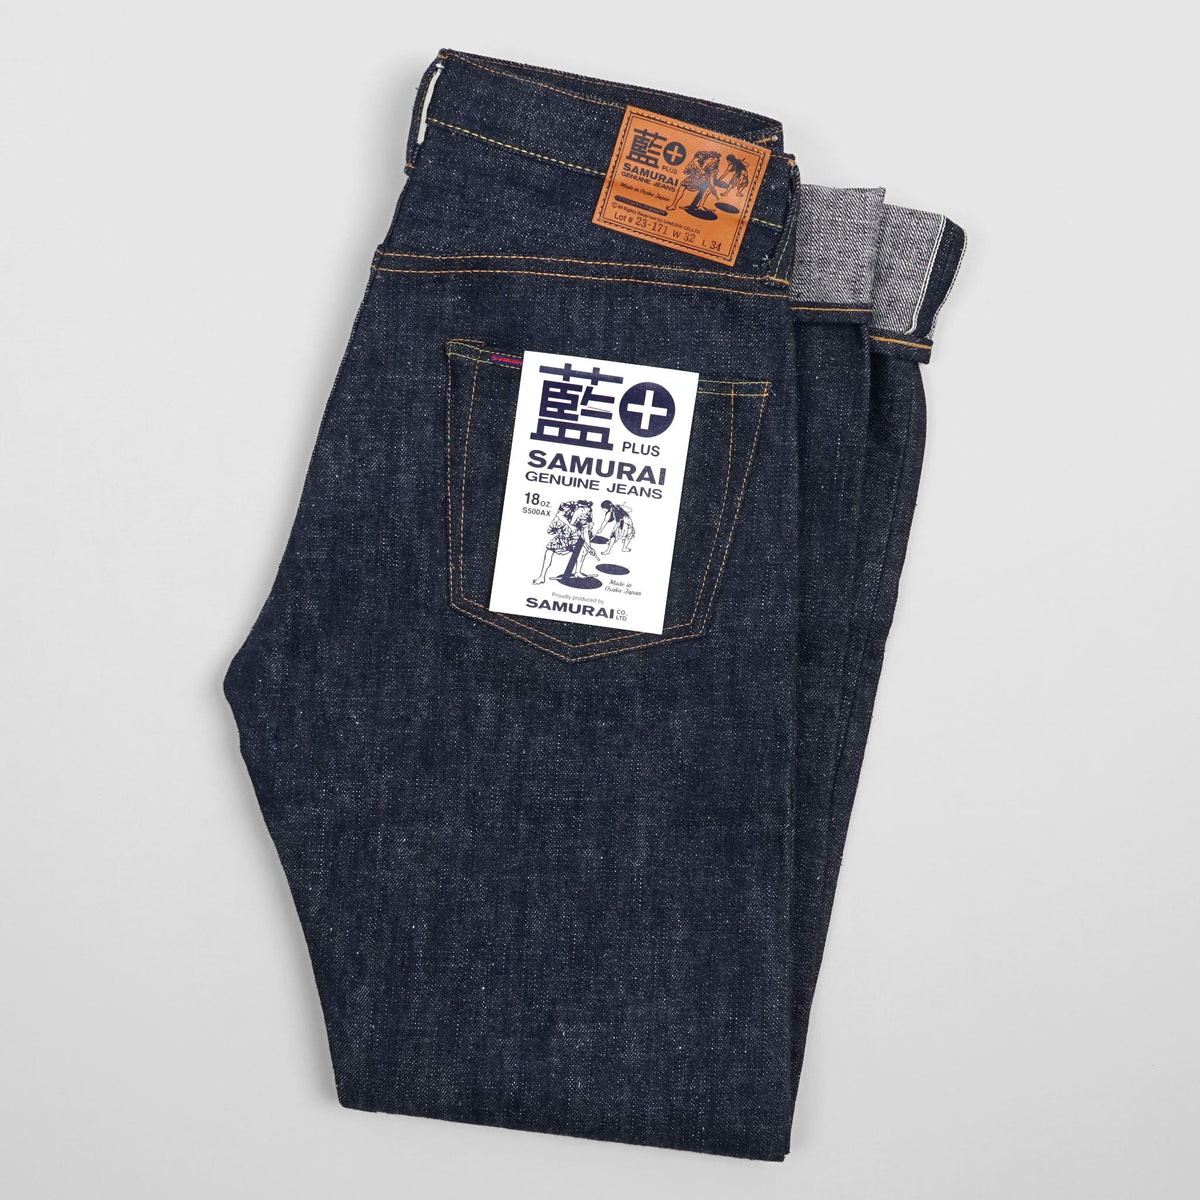 Samurai Jeans 18oz Denim Authentic Indigo